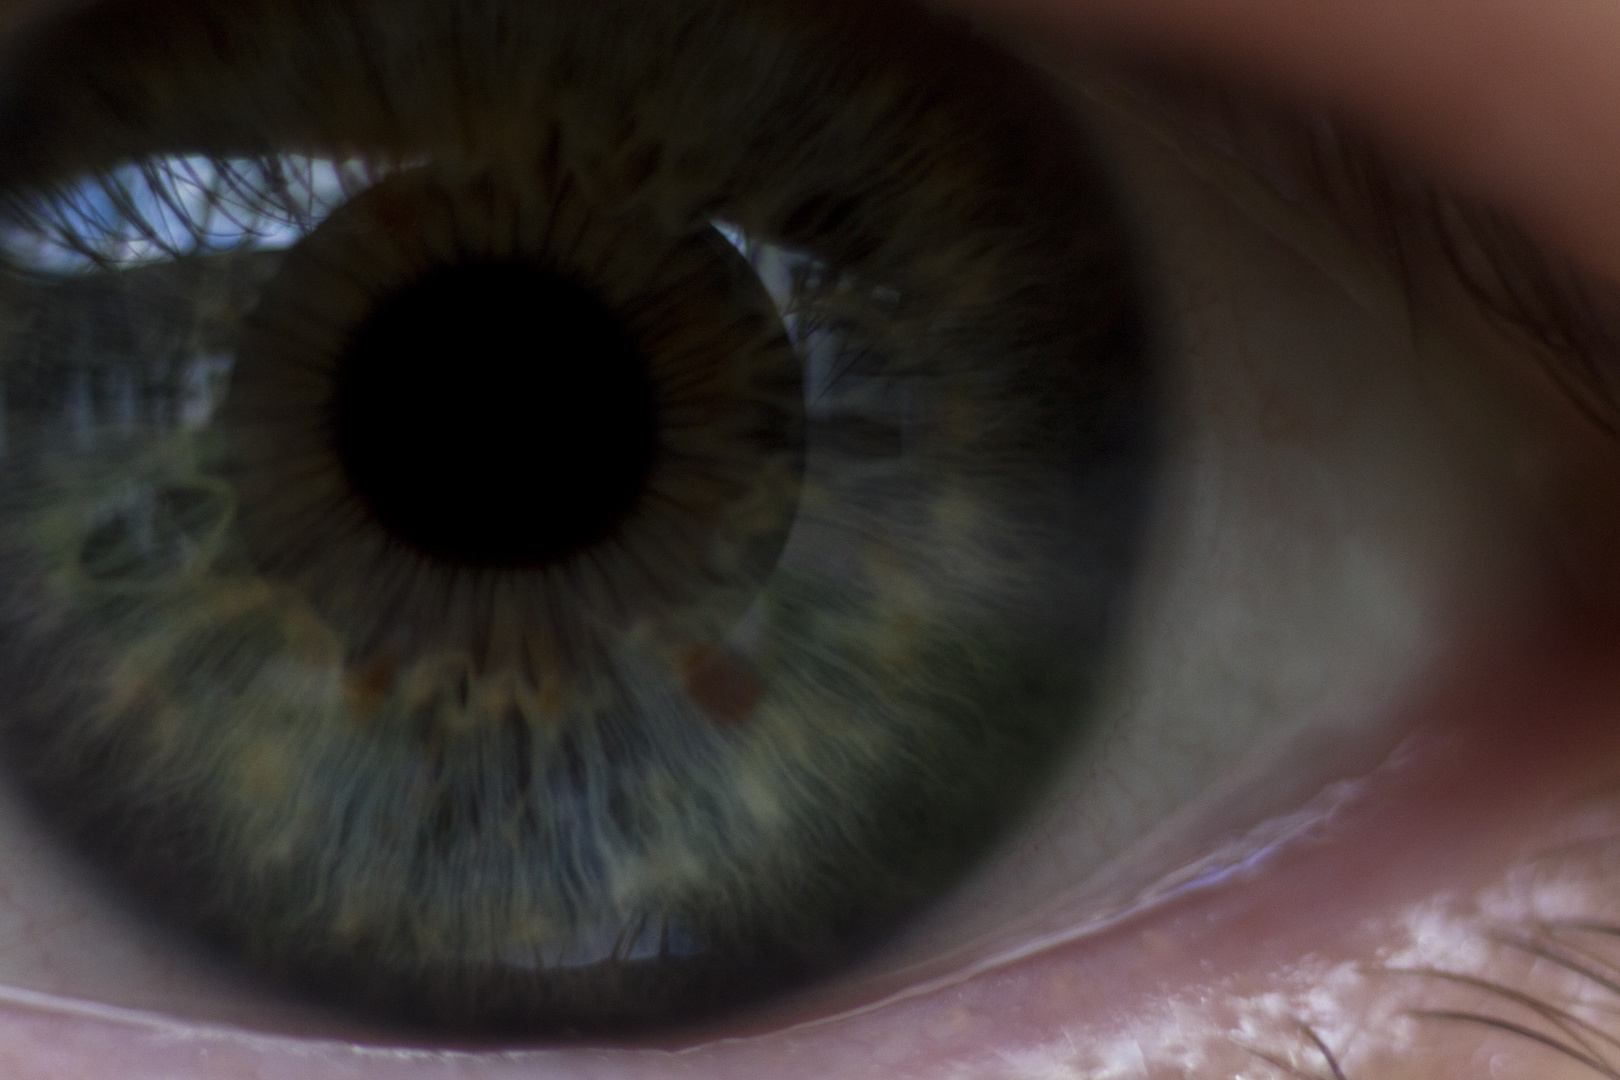 show me your eye